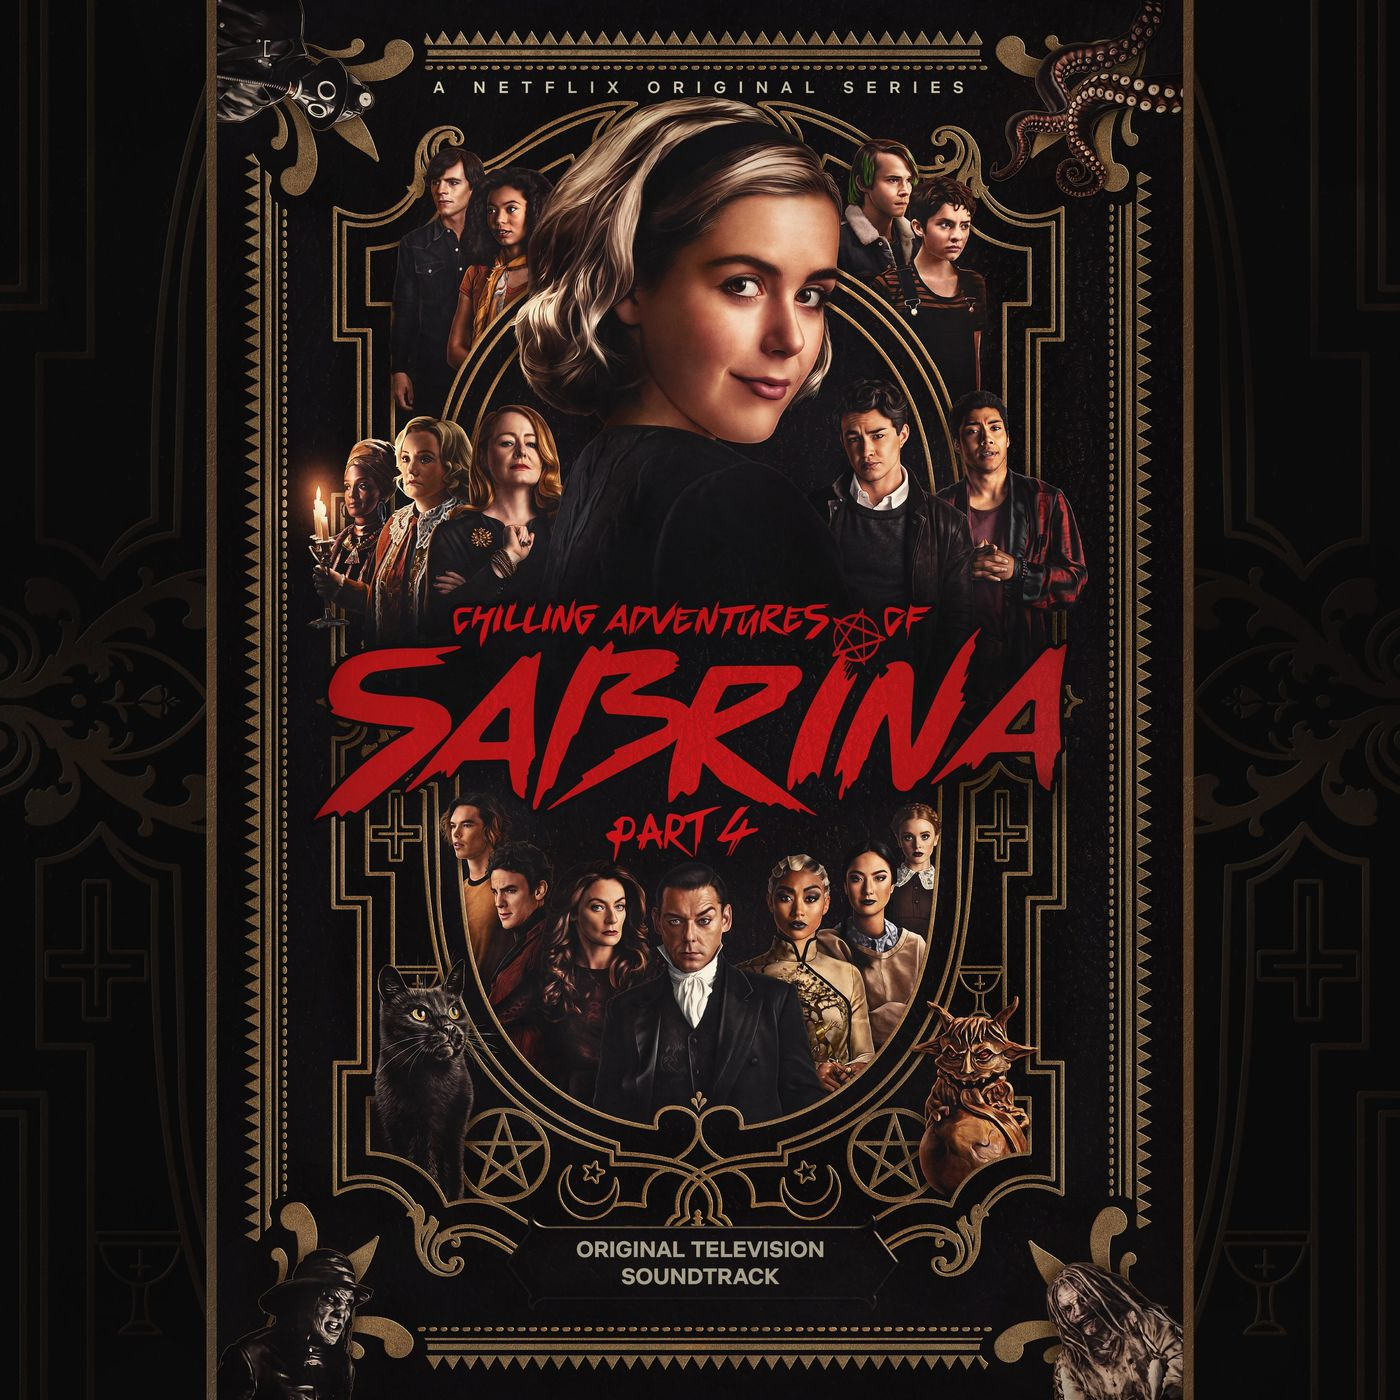 Cast of Chilling Adventures of Sabrina, Jaz Sinclair, Jonathan Whitesell, Lachlan Watson, Ross Lynch - Time Warp (feat. Ross Lynch, Jaz Sinclair, Lachlan Watson & Jonathan Whitesell)